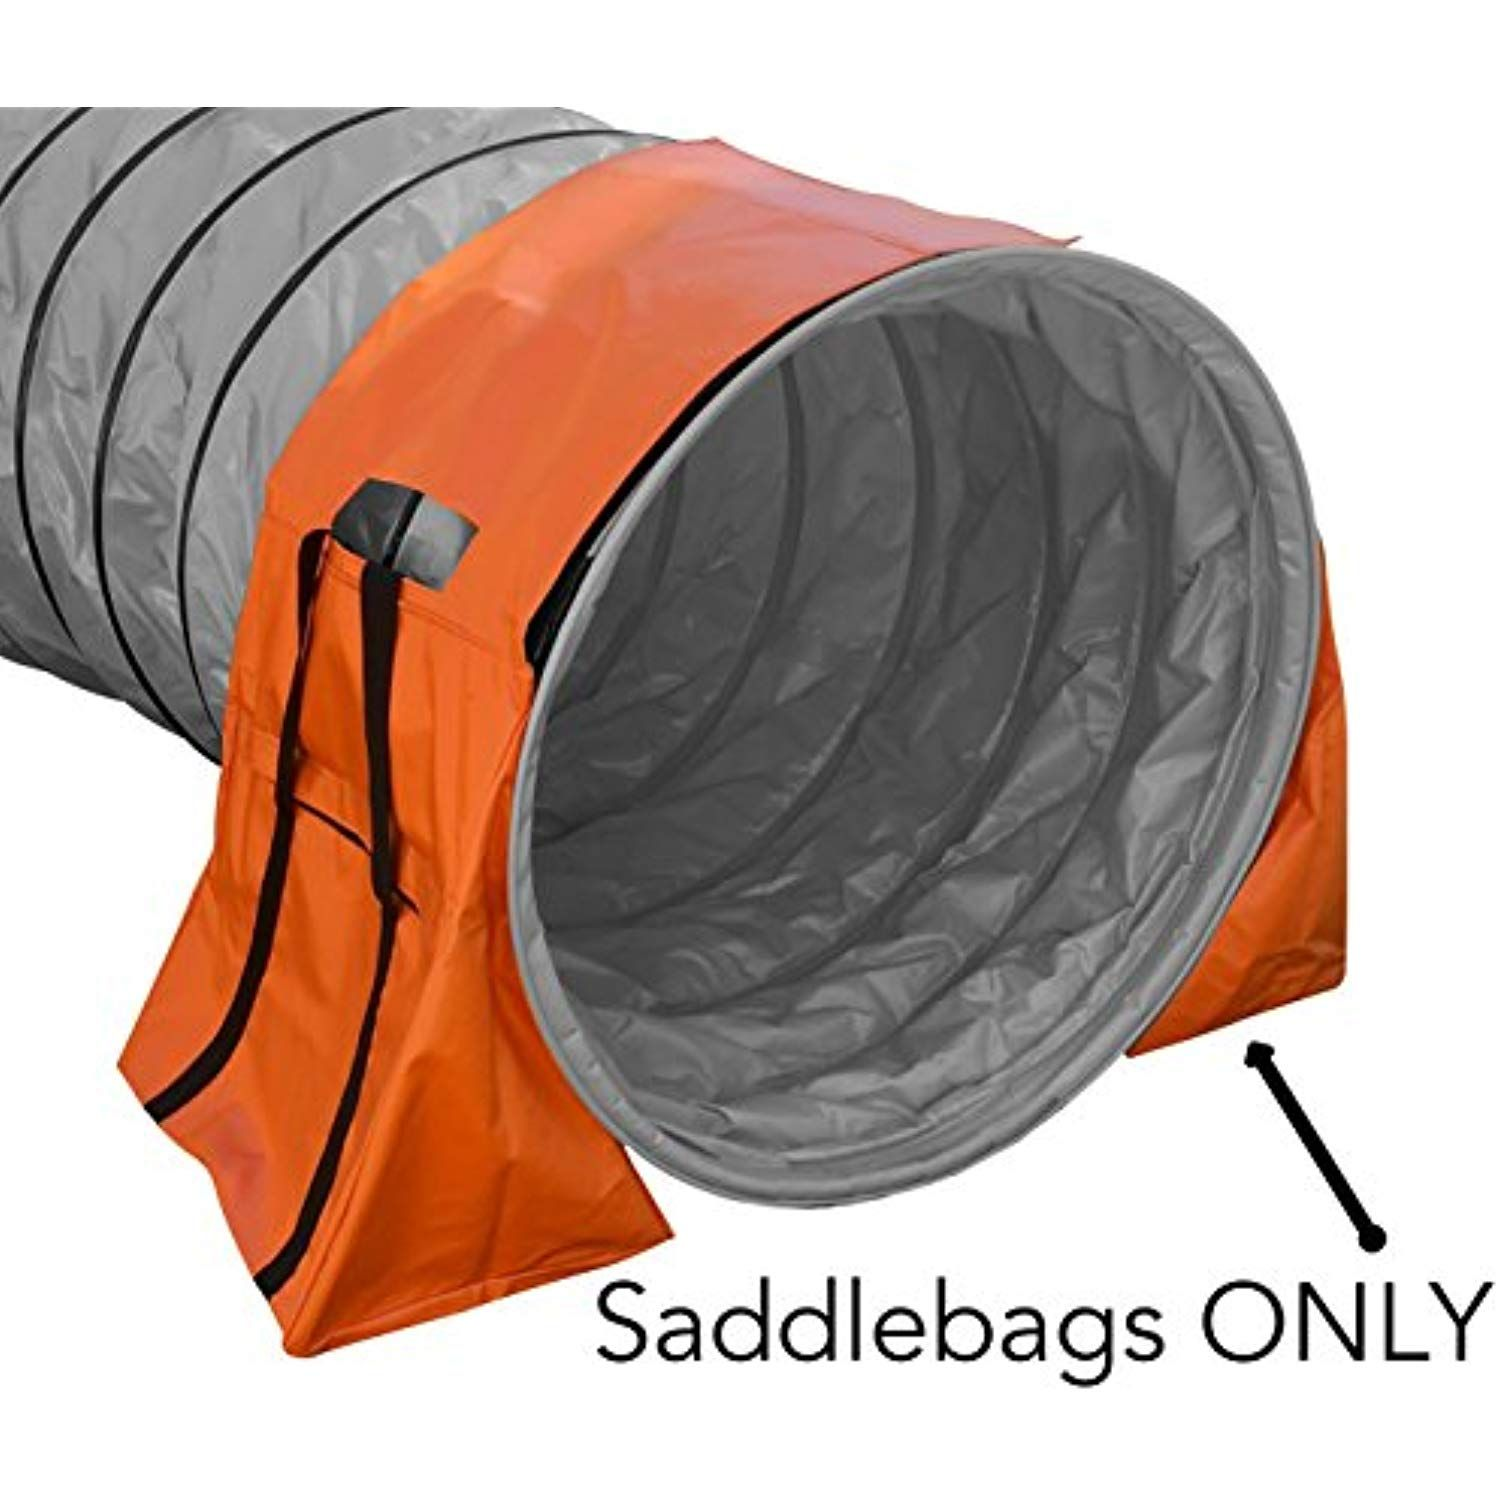 Non-Constricting Saddlebags For Stabilizing Dog Agility